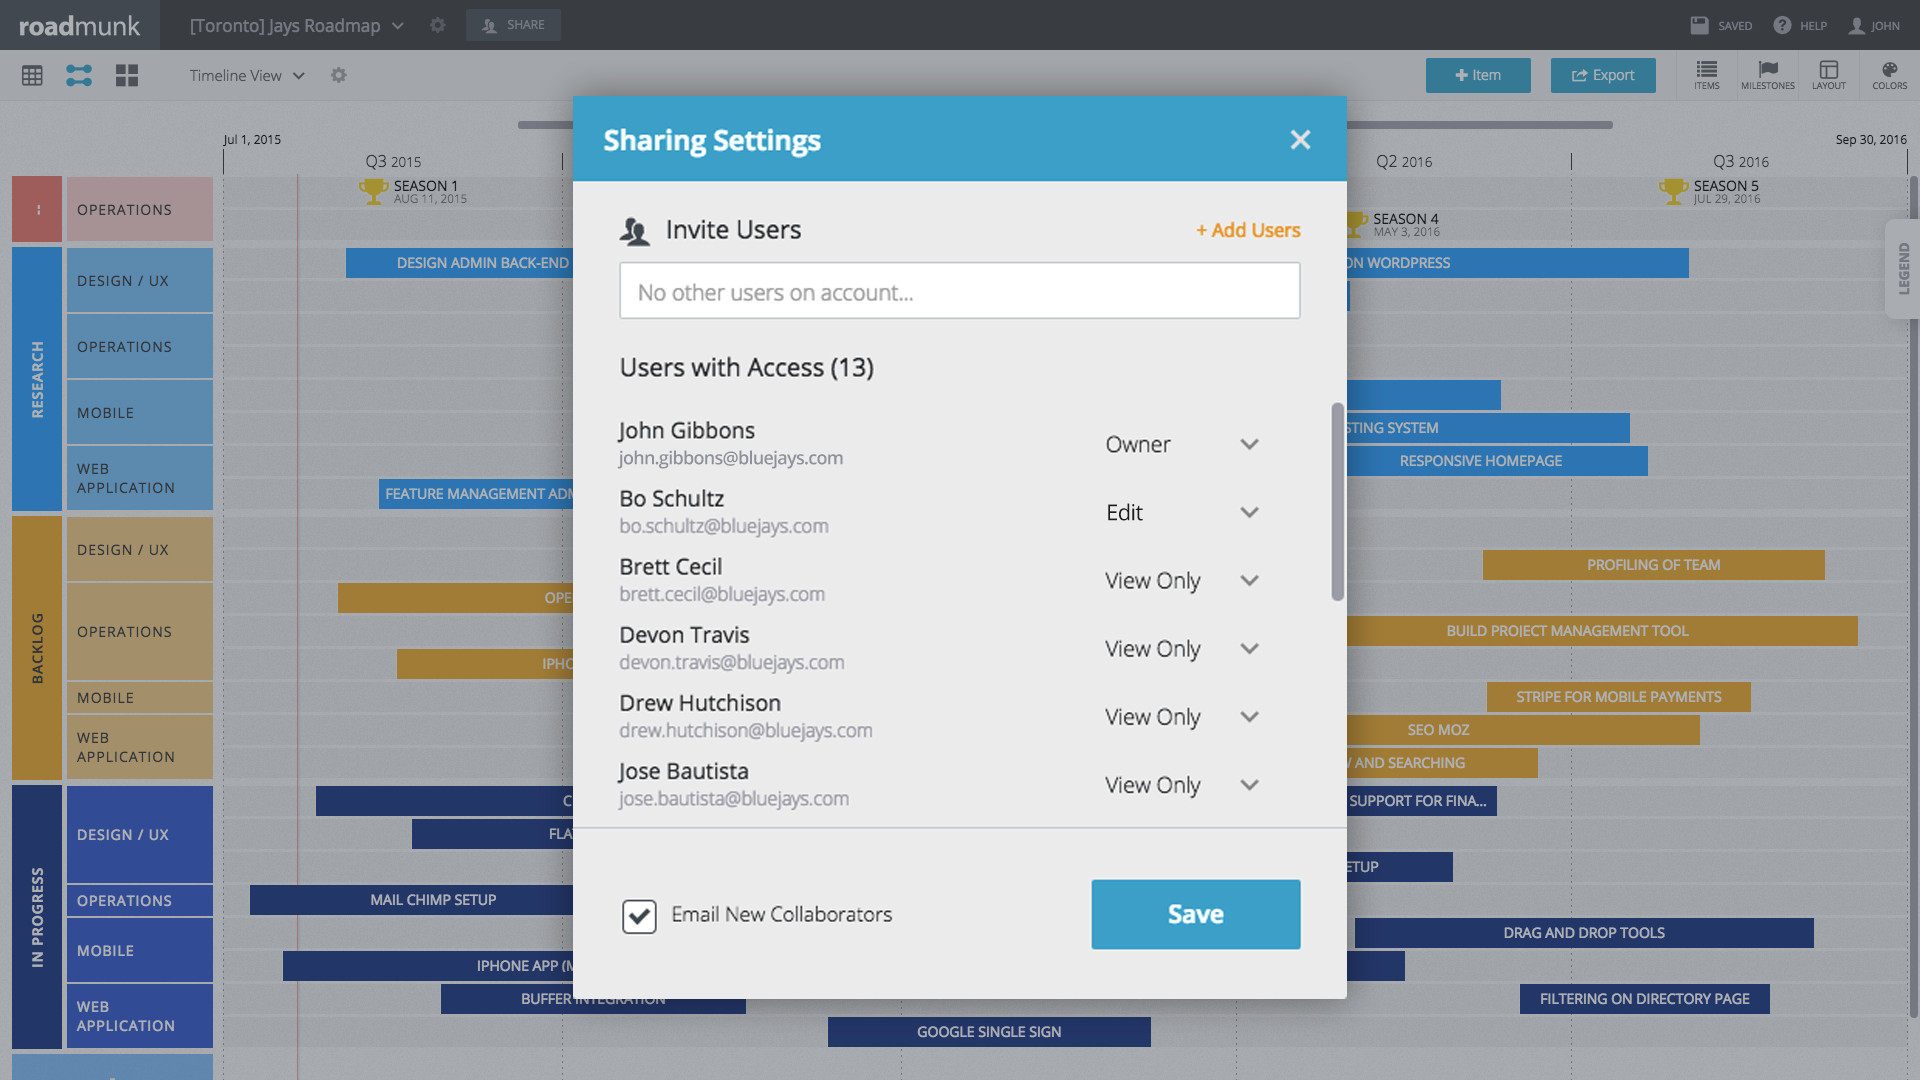 Assign users as either an editor, viewer, or owner of the roadmap